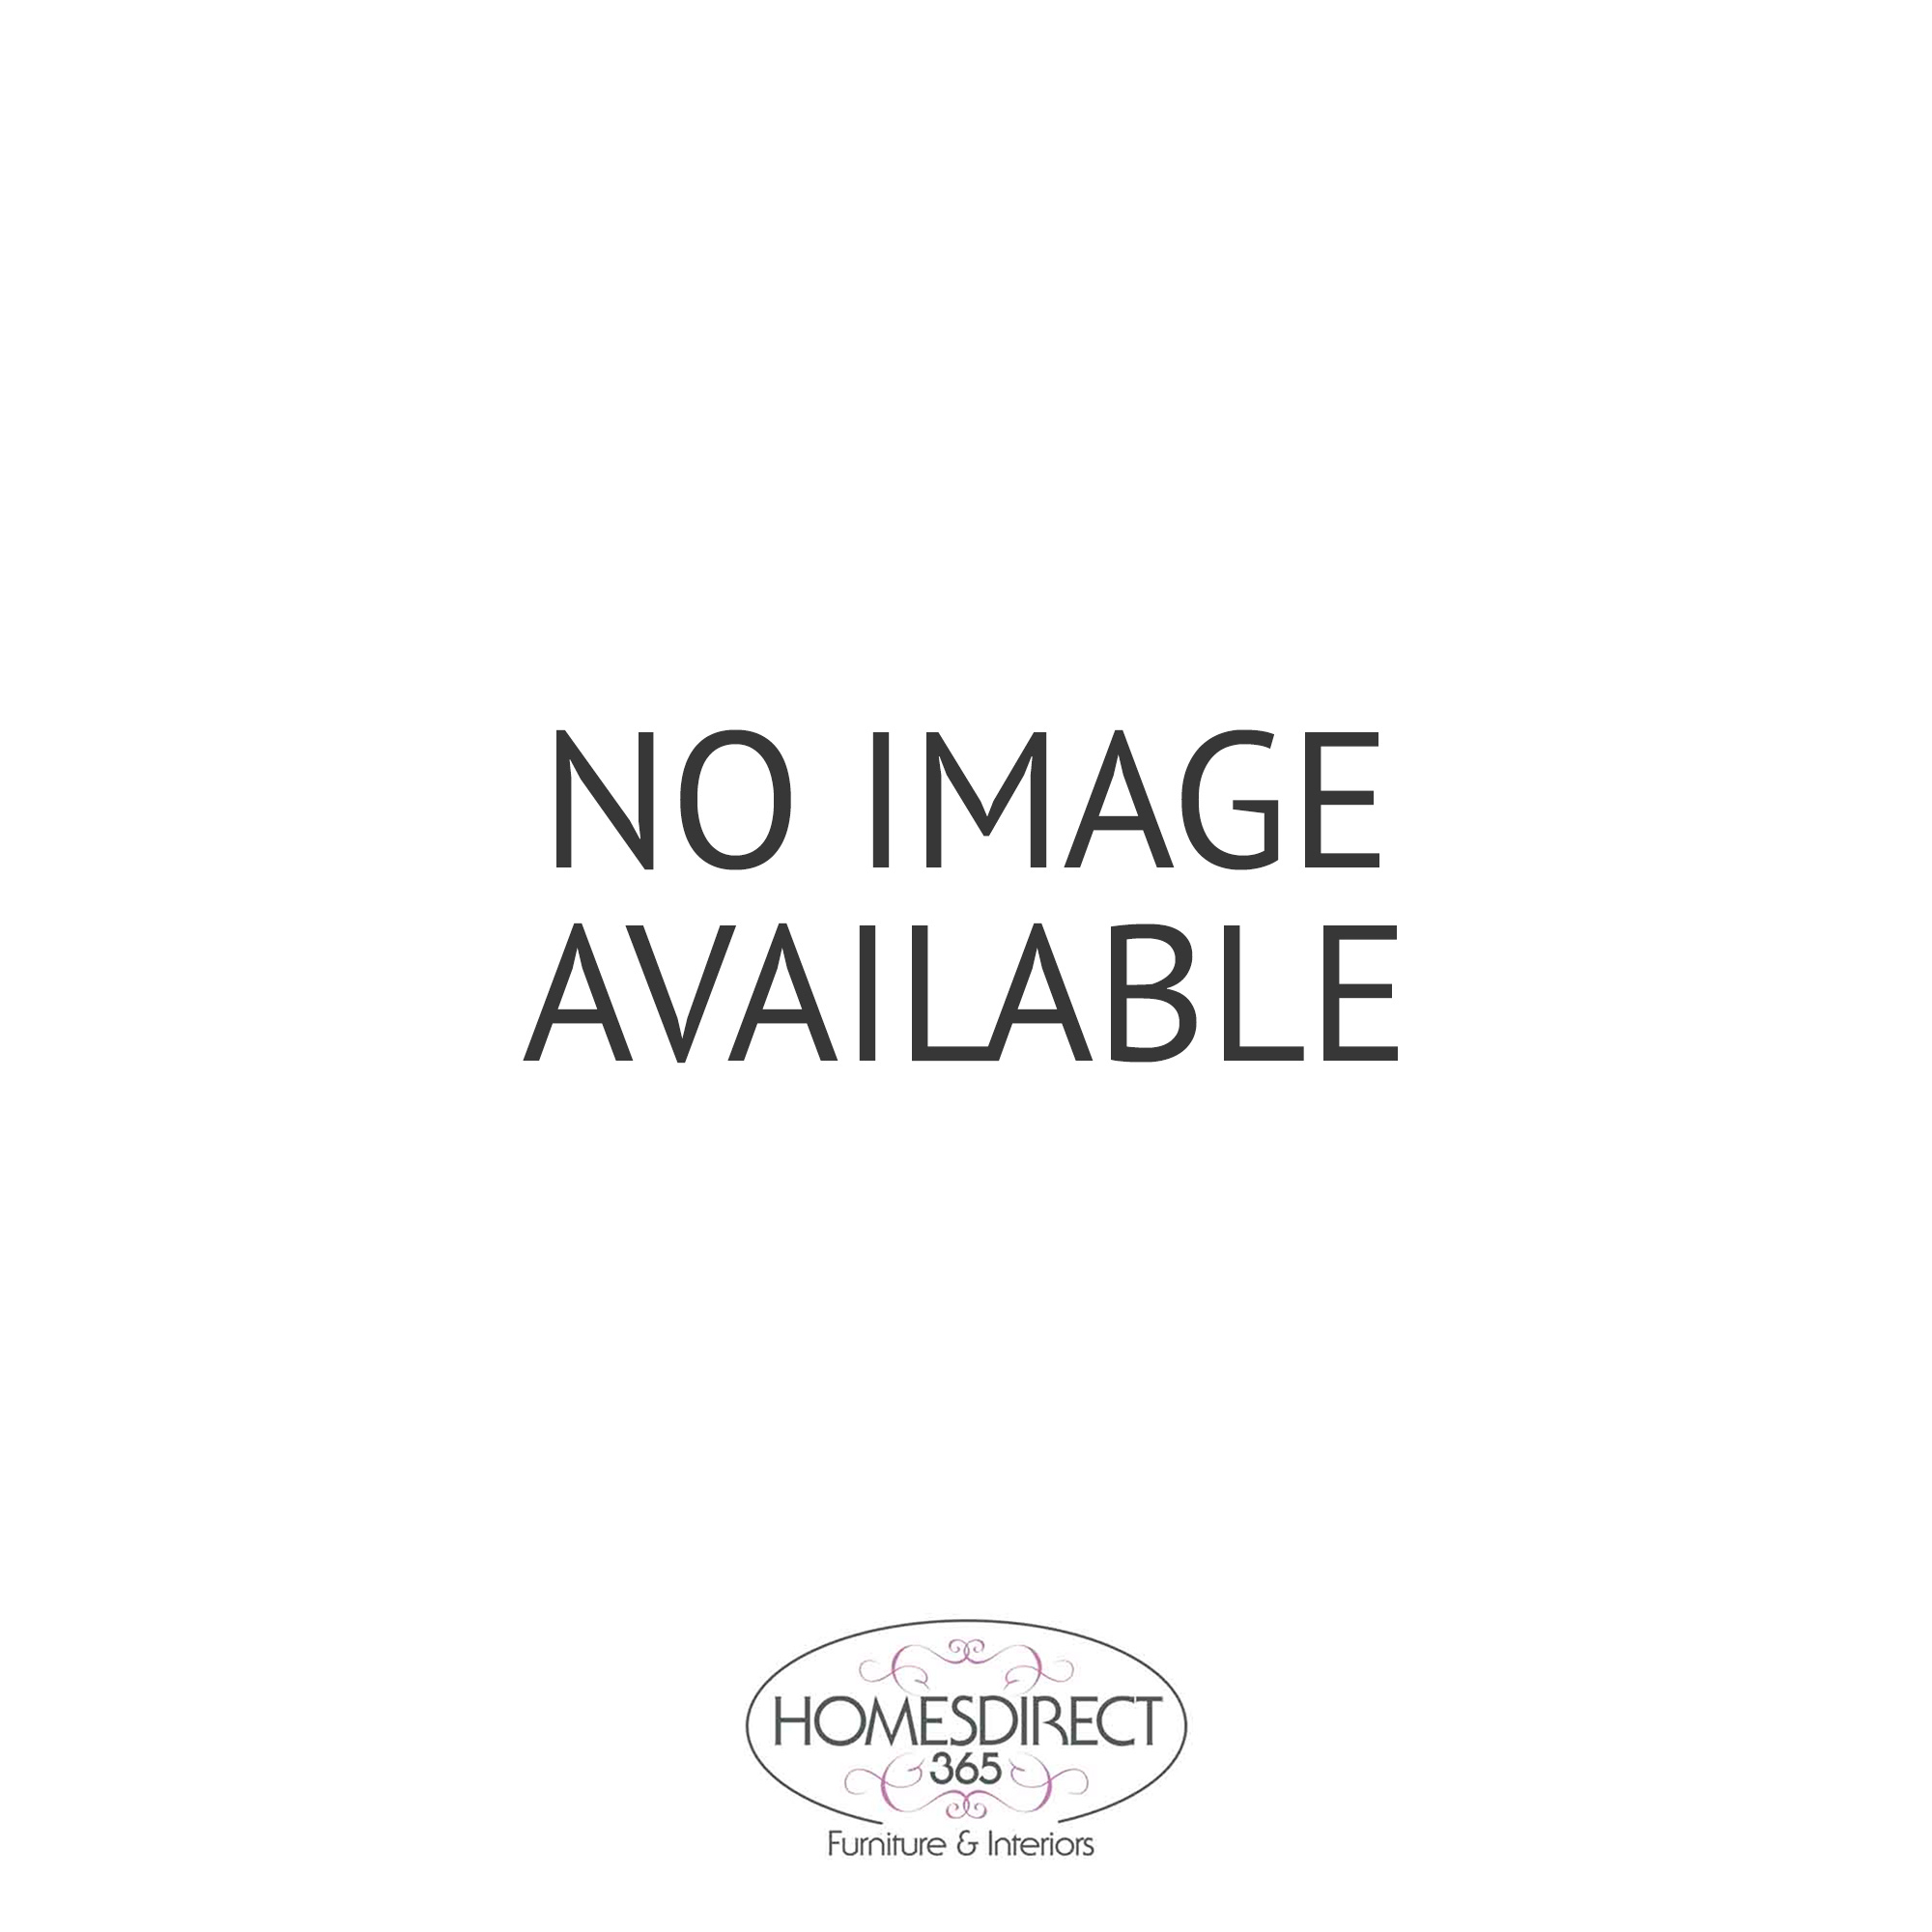 Executive Leather Chair and Pouffe Footstool